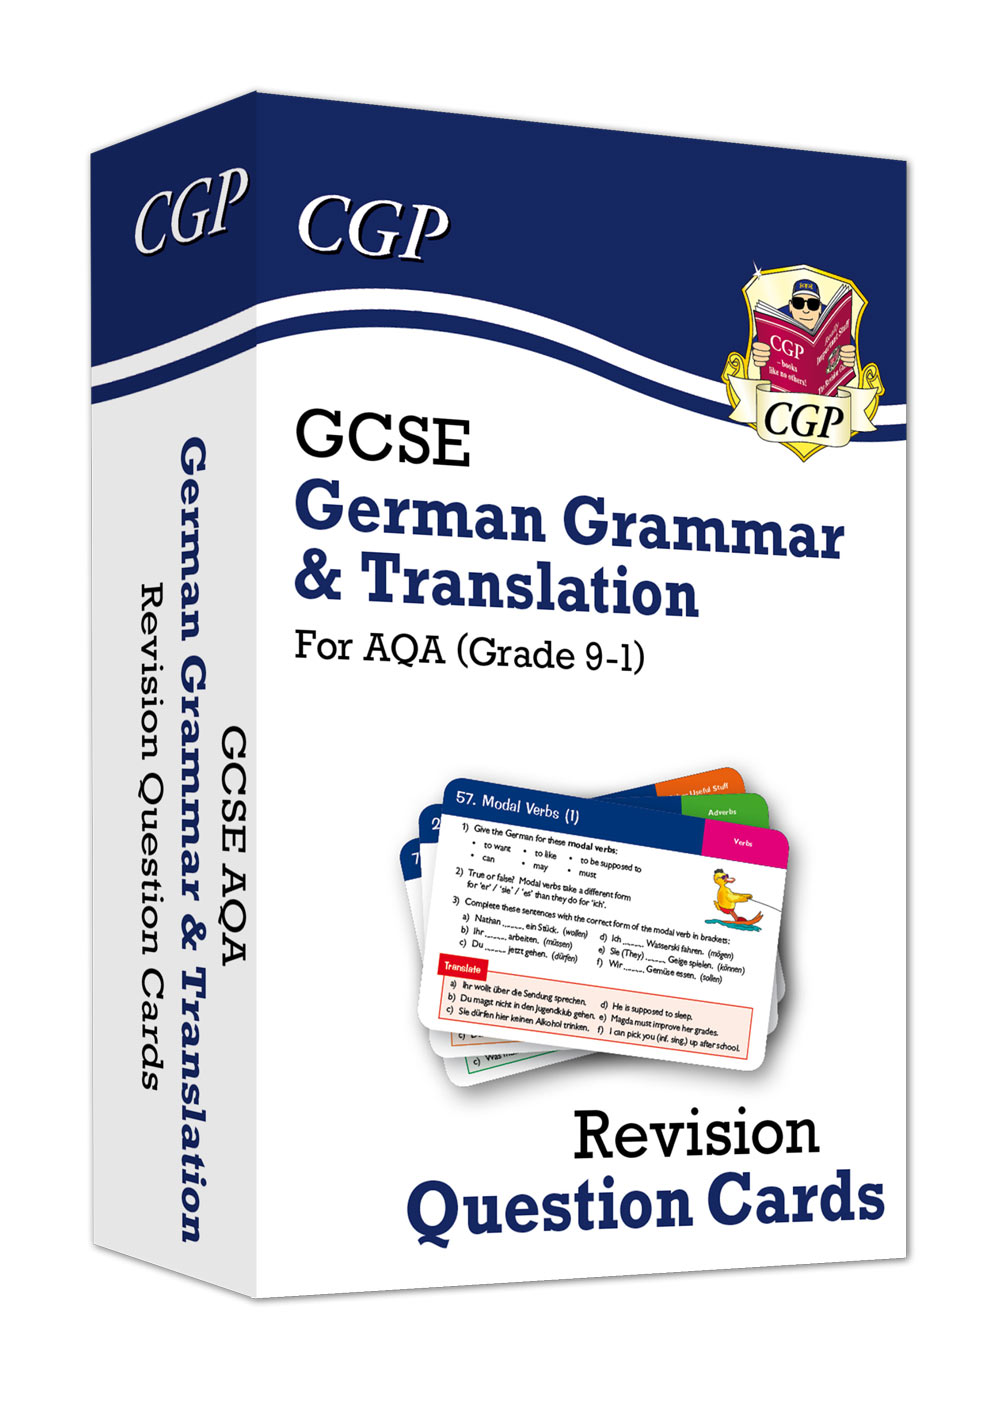 DATF41 - New Grade 9-1 GCSE AQA German: Grammar & Translation Revision Question Cards